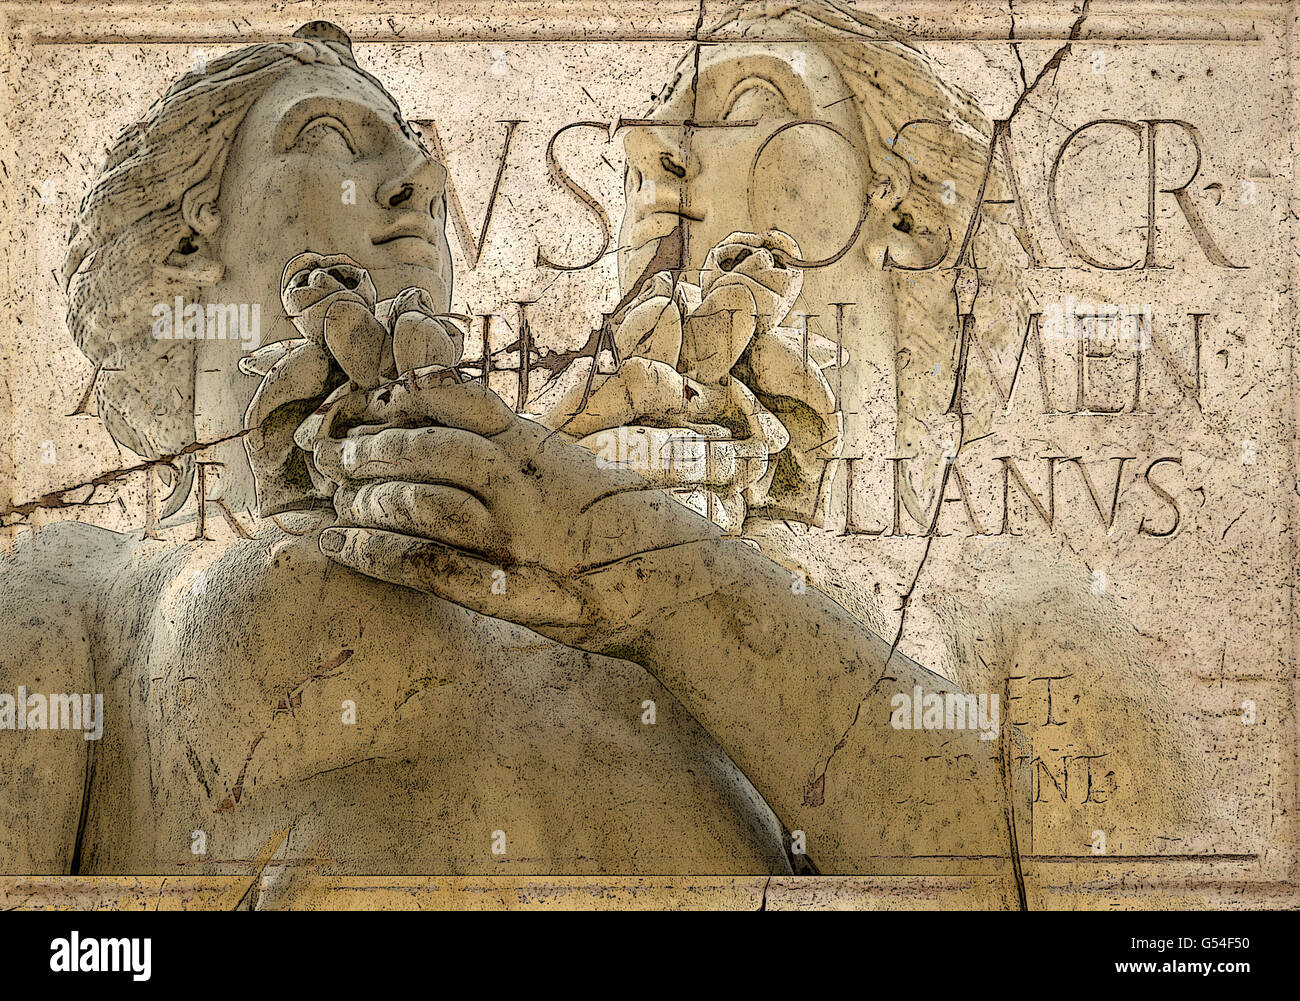 Classic sculpture. Textured and digitally altered photo with Latin inscription. - Stock Image